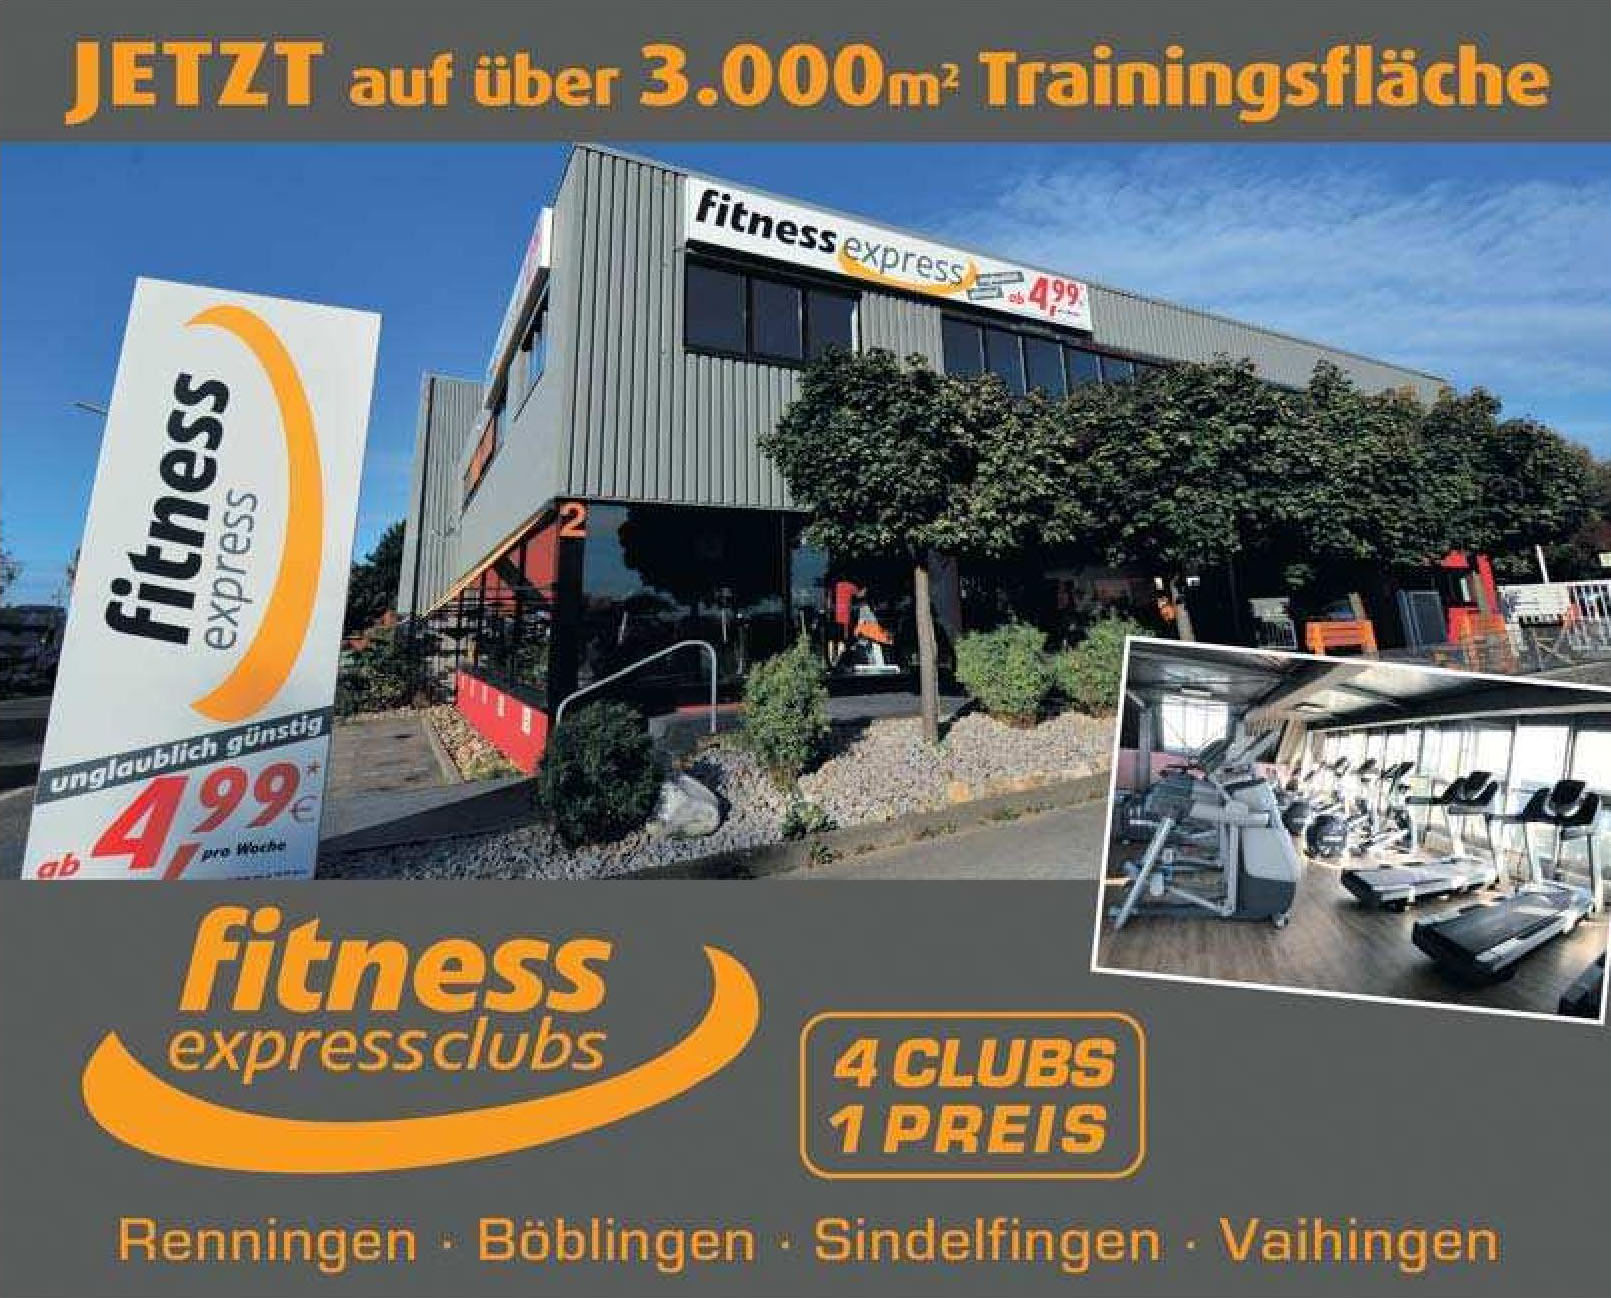 Fitness express clubs